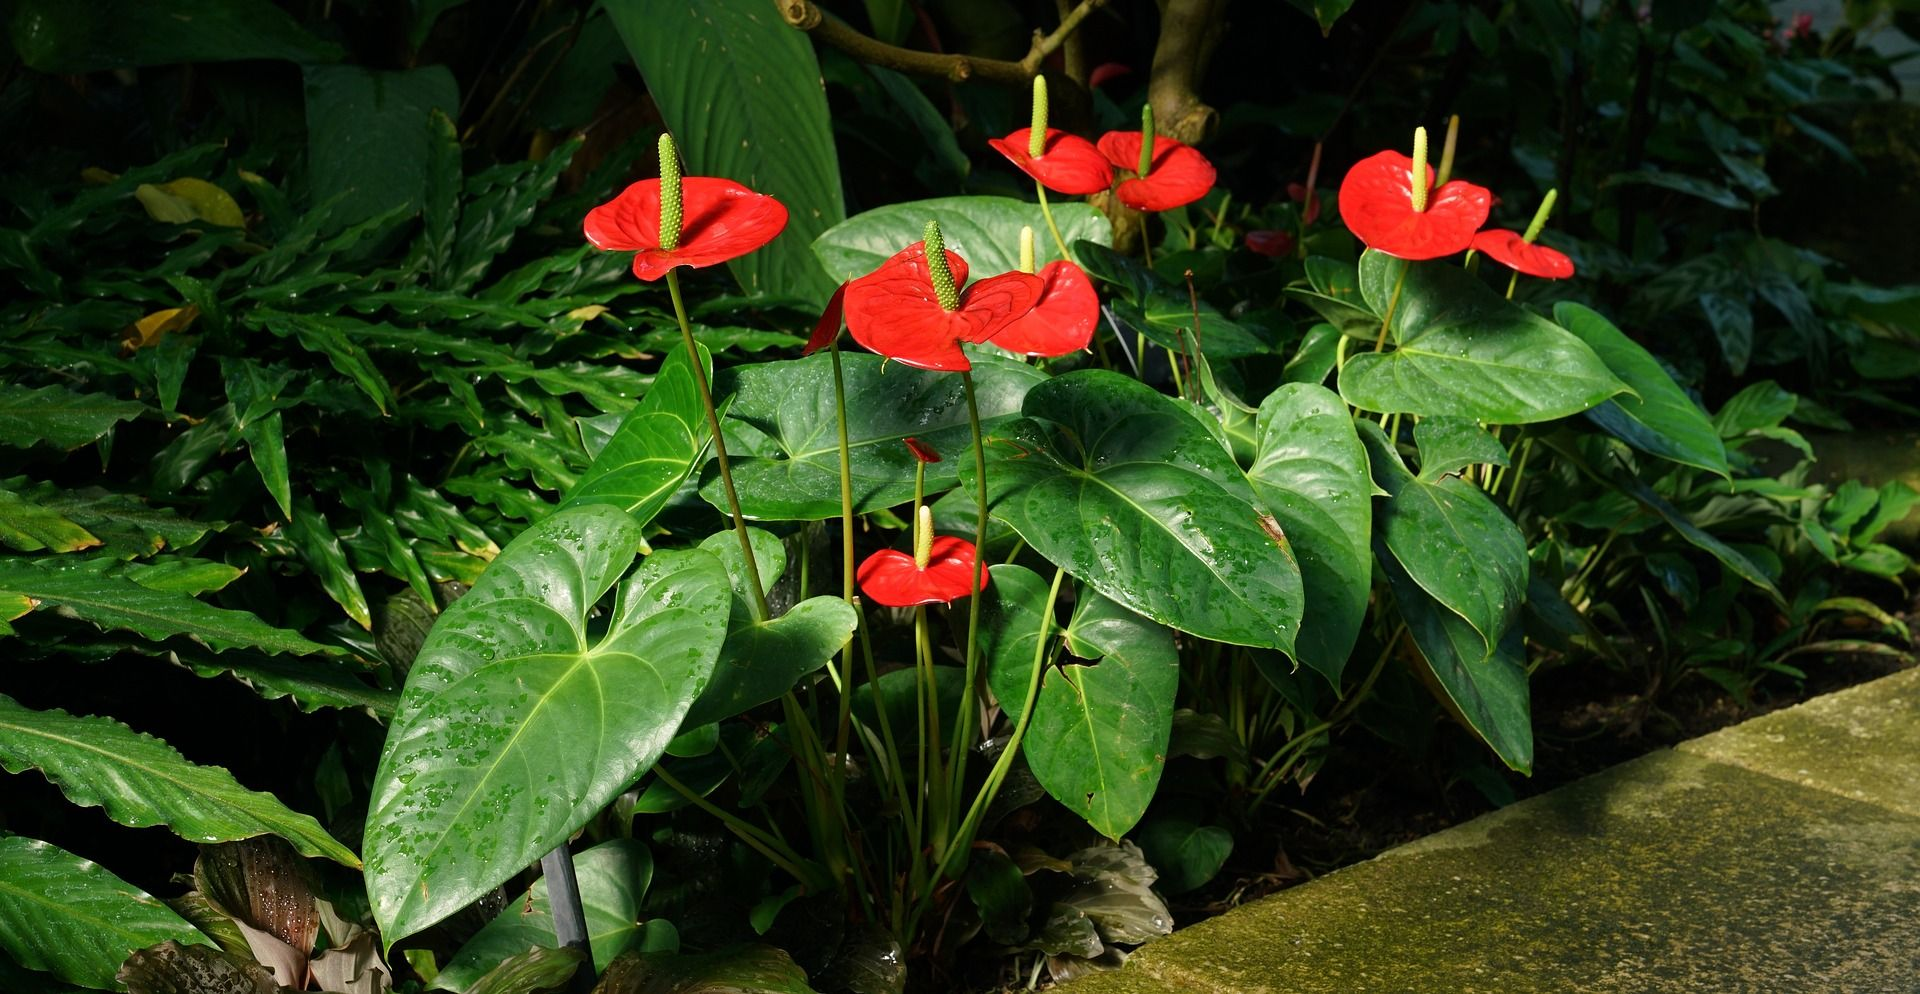 Characteristics Of A Quality Anthuriyam Plant Staying Healthy Green Quality Of A Anthurium Plant Having A White Anthurium Plant Anthurium Plants